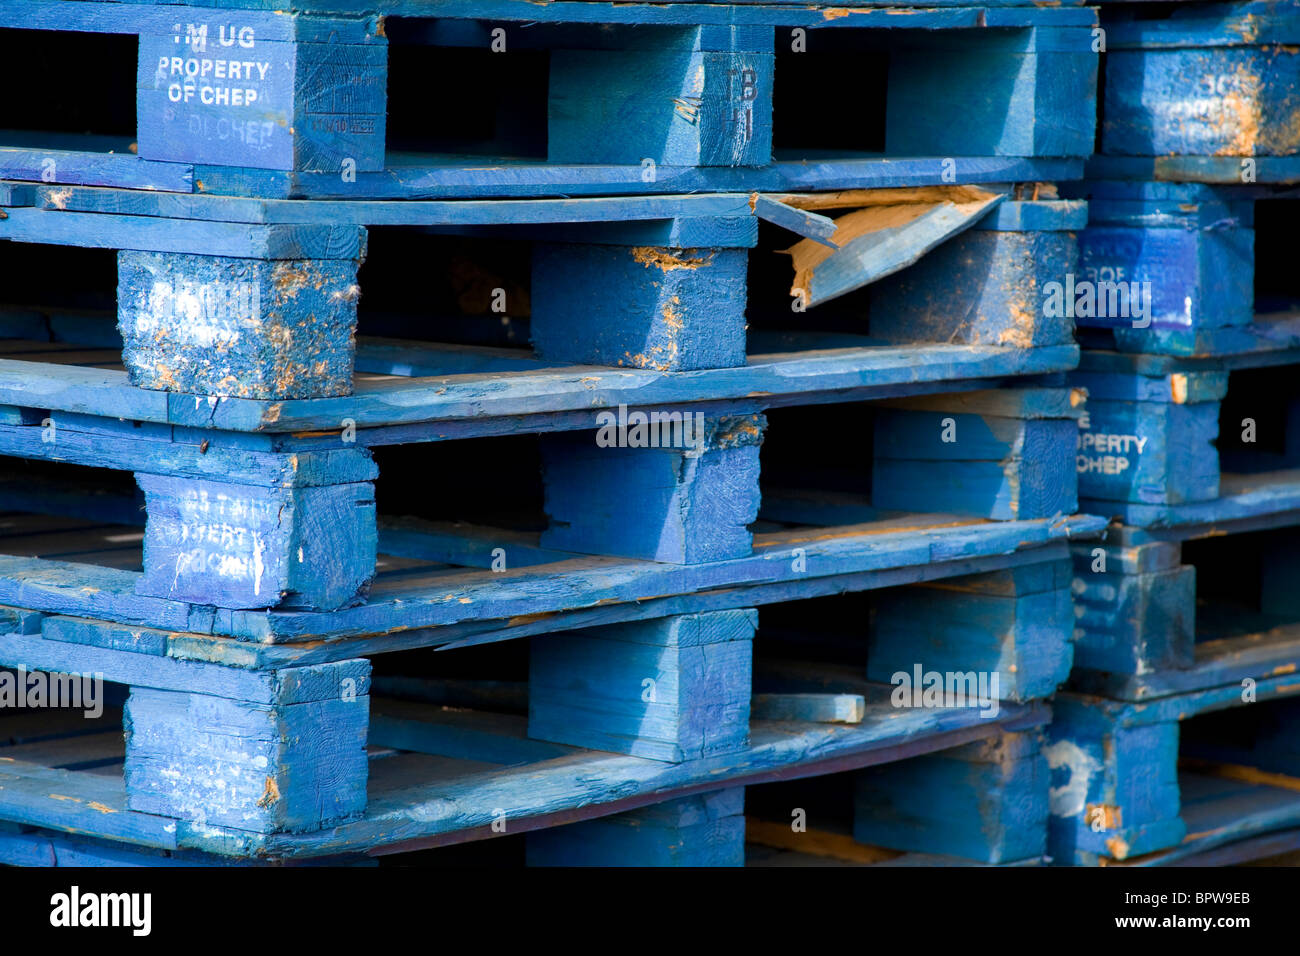 Chep Pallets Uk Stock Photos & Chep Pallets Uk Stock Images